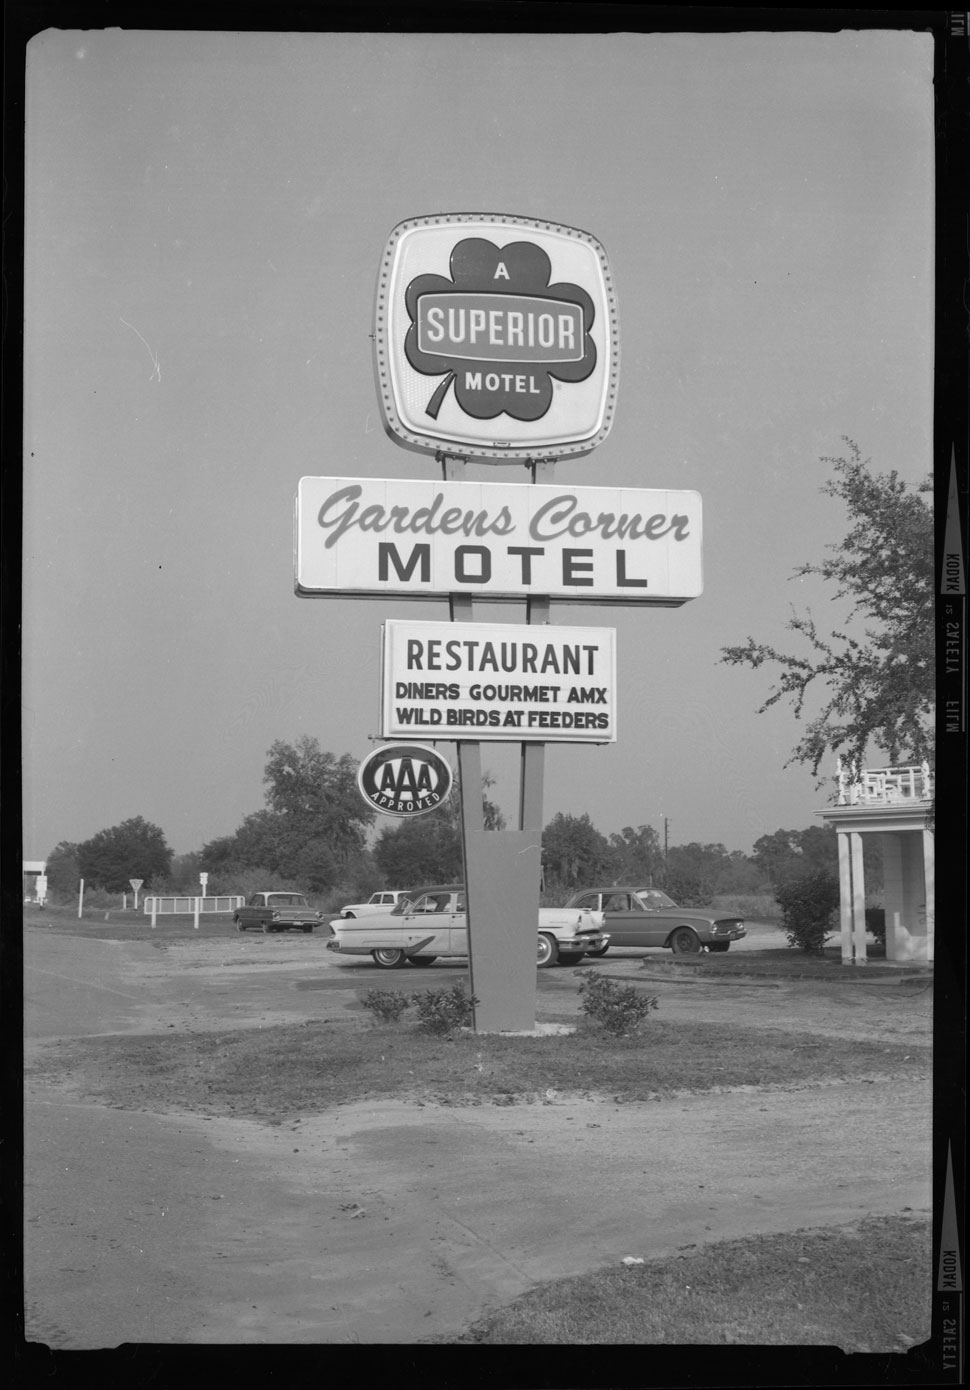 Gardens Corner Motel and Restaurant road sign